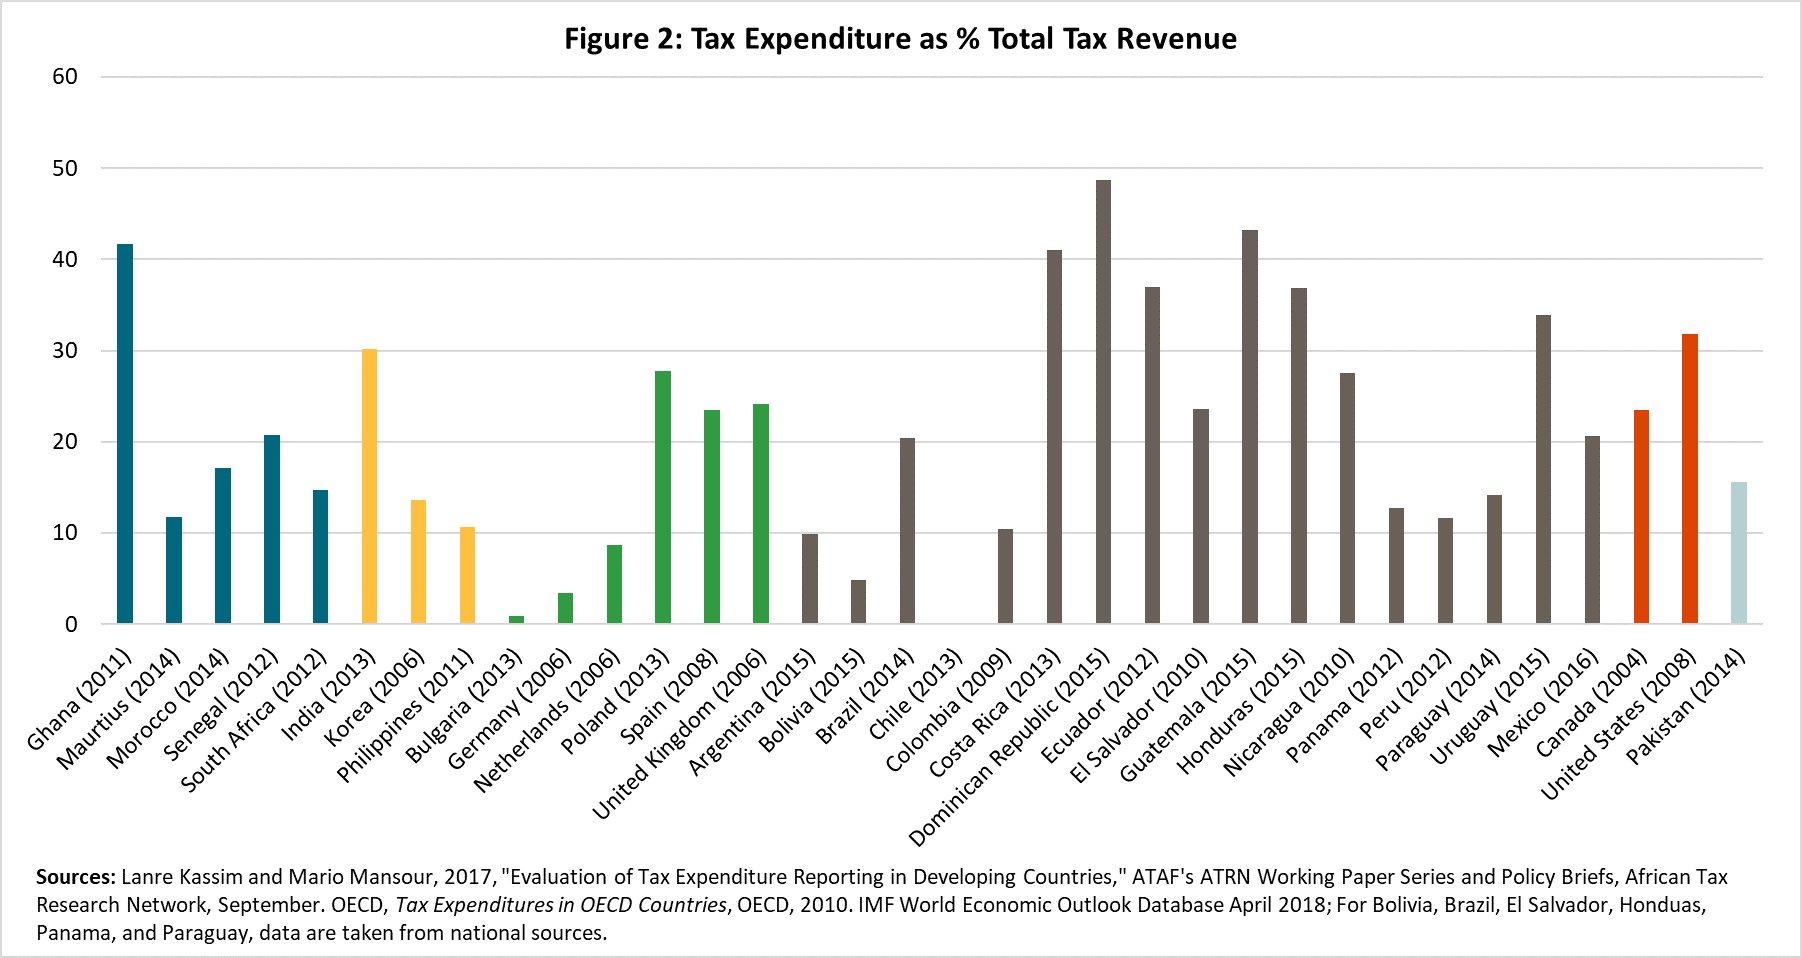 Figure 2: Tax Expenditure as % of Total Tax Revenue